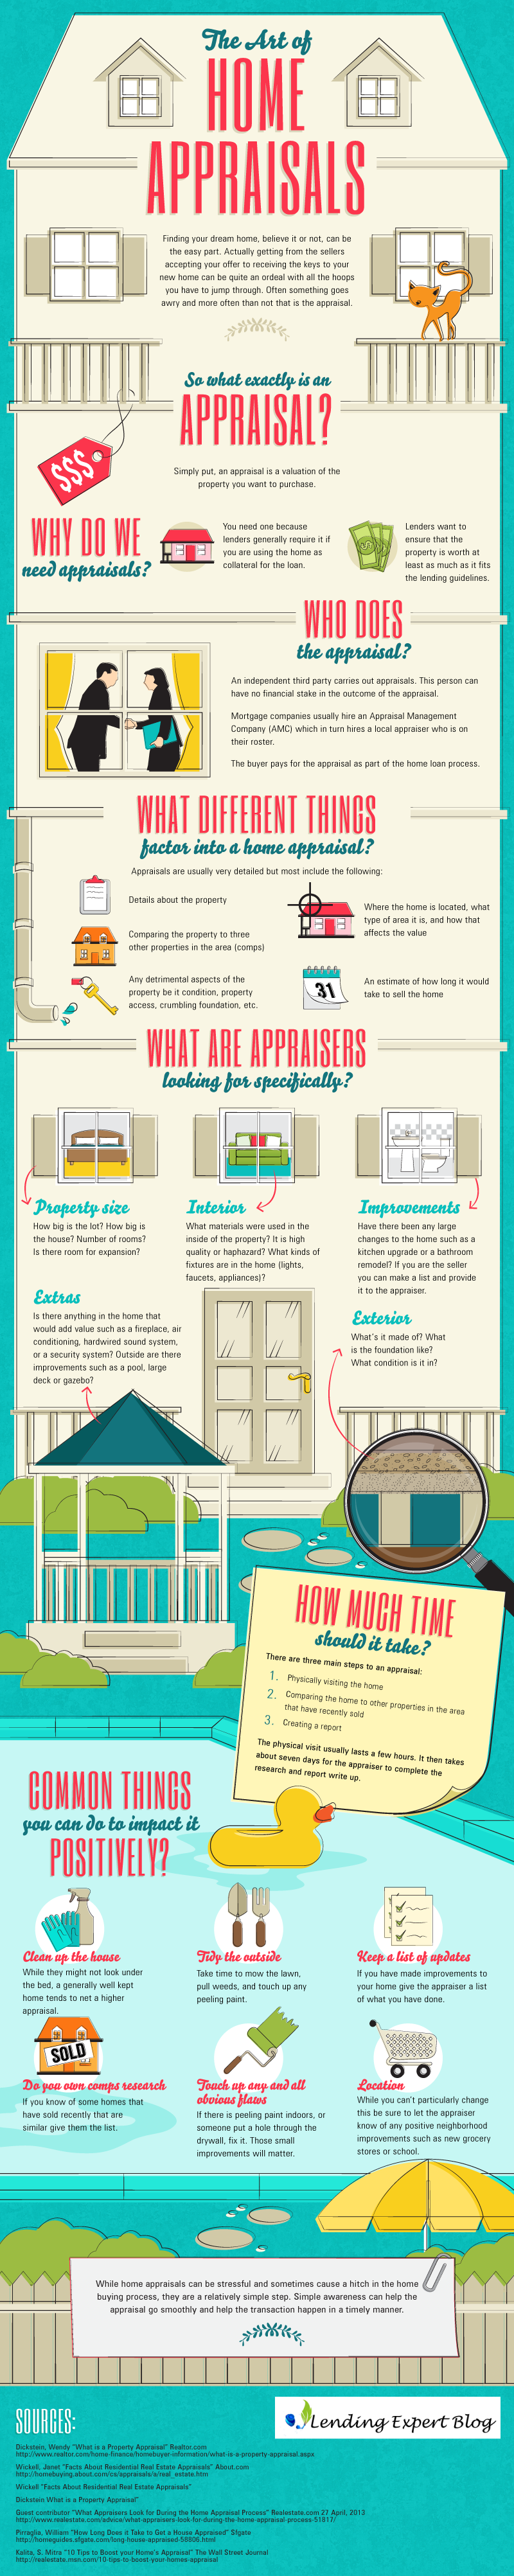 The Art and Science of Home Appraisals